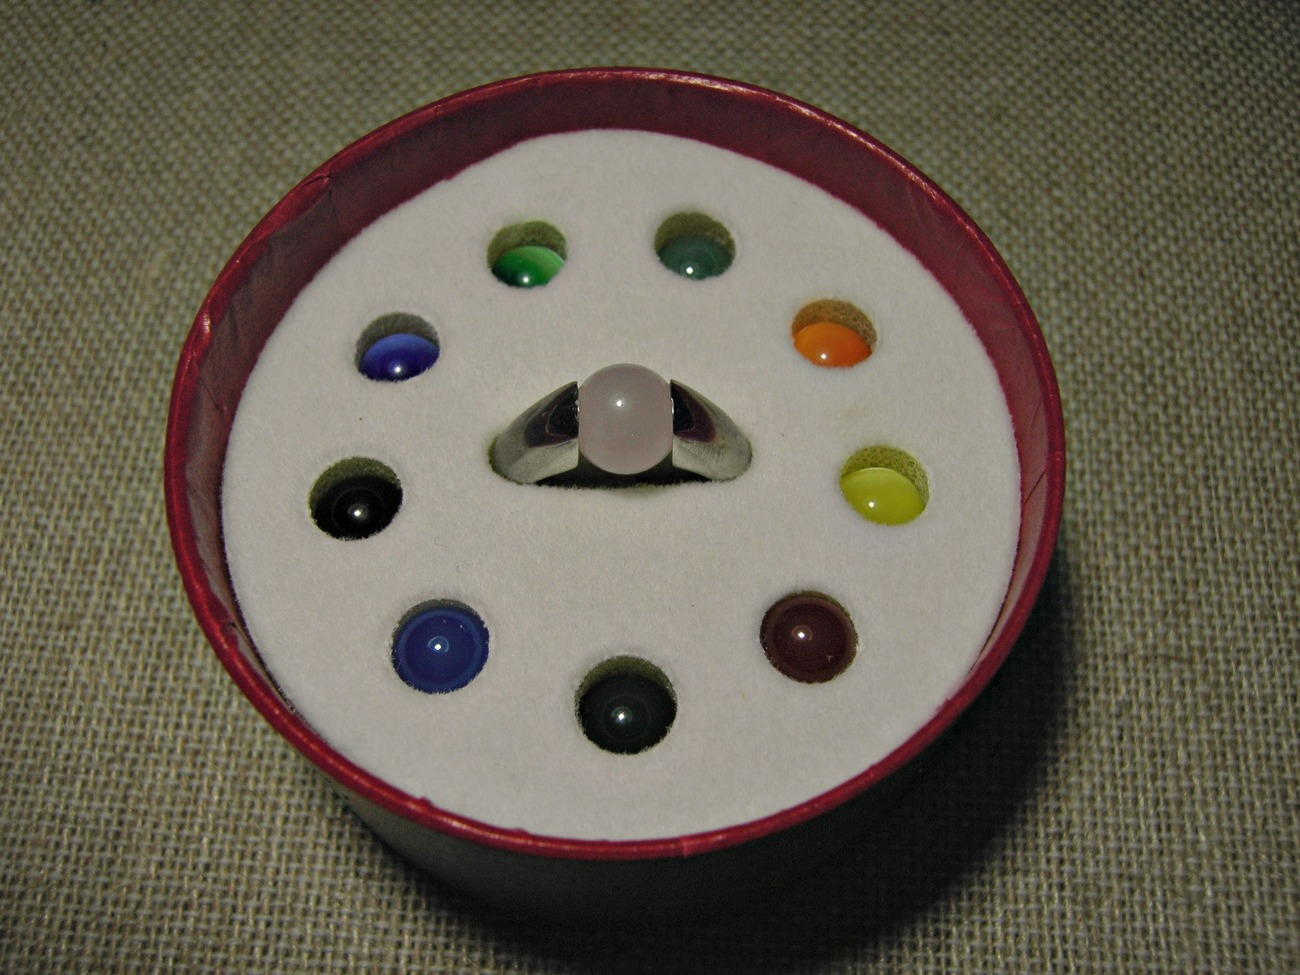 sterling silver ring with 10 interchangeable color orbs